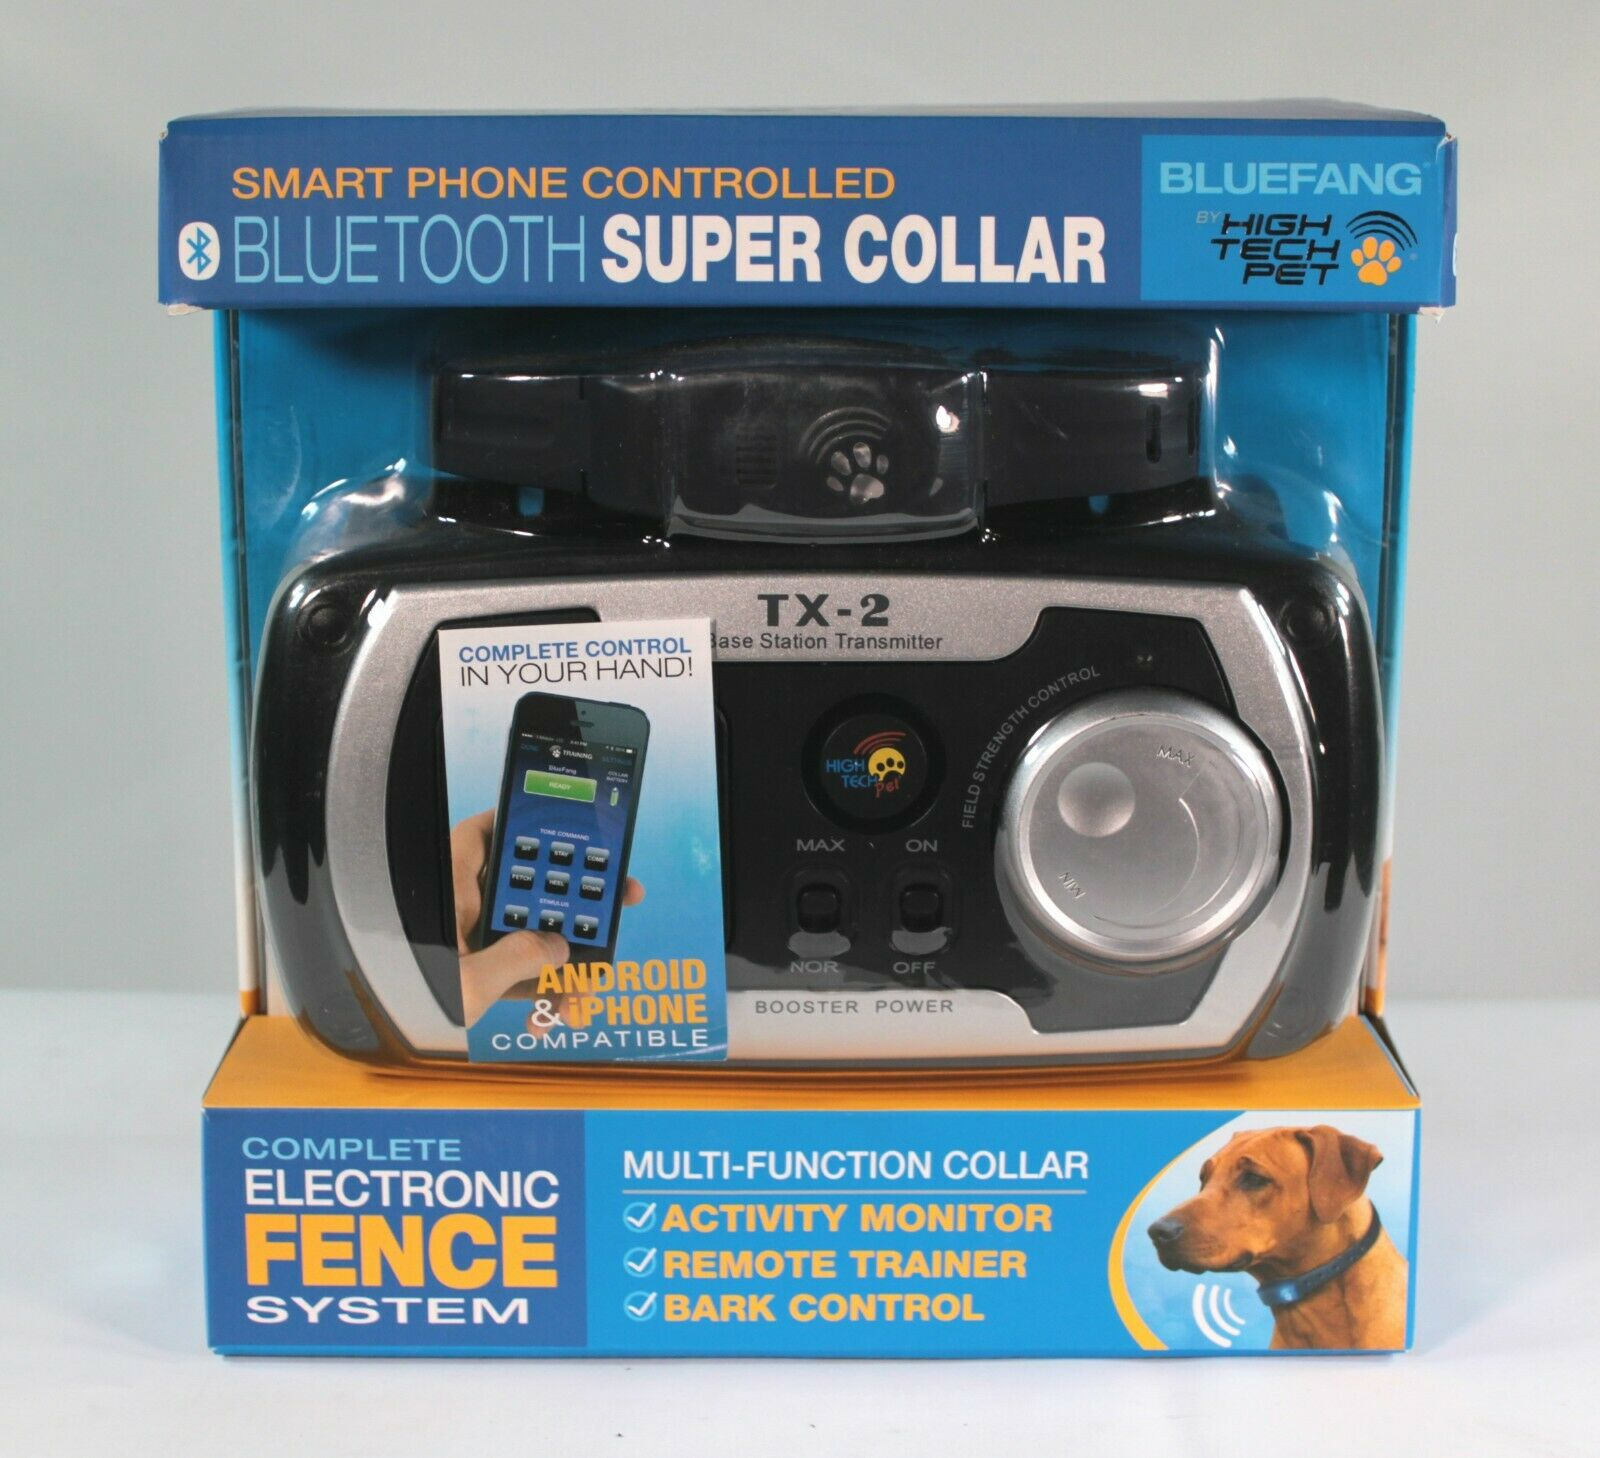 High Tech Pet Blaufang 4 in 1 Blautooth Super Collar Electronic Fence System